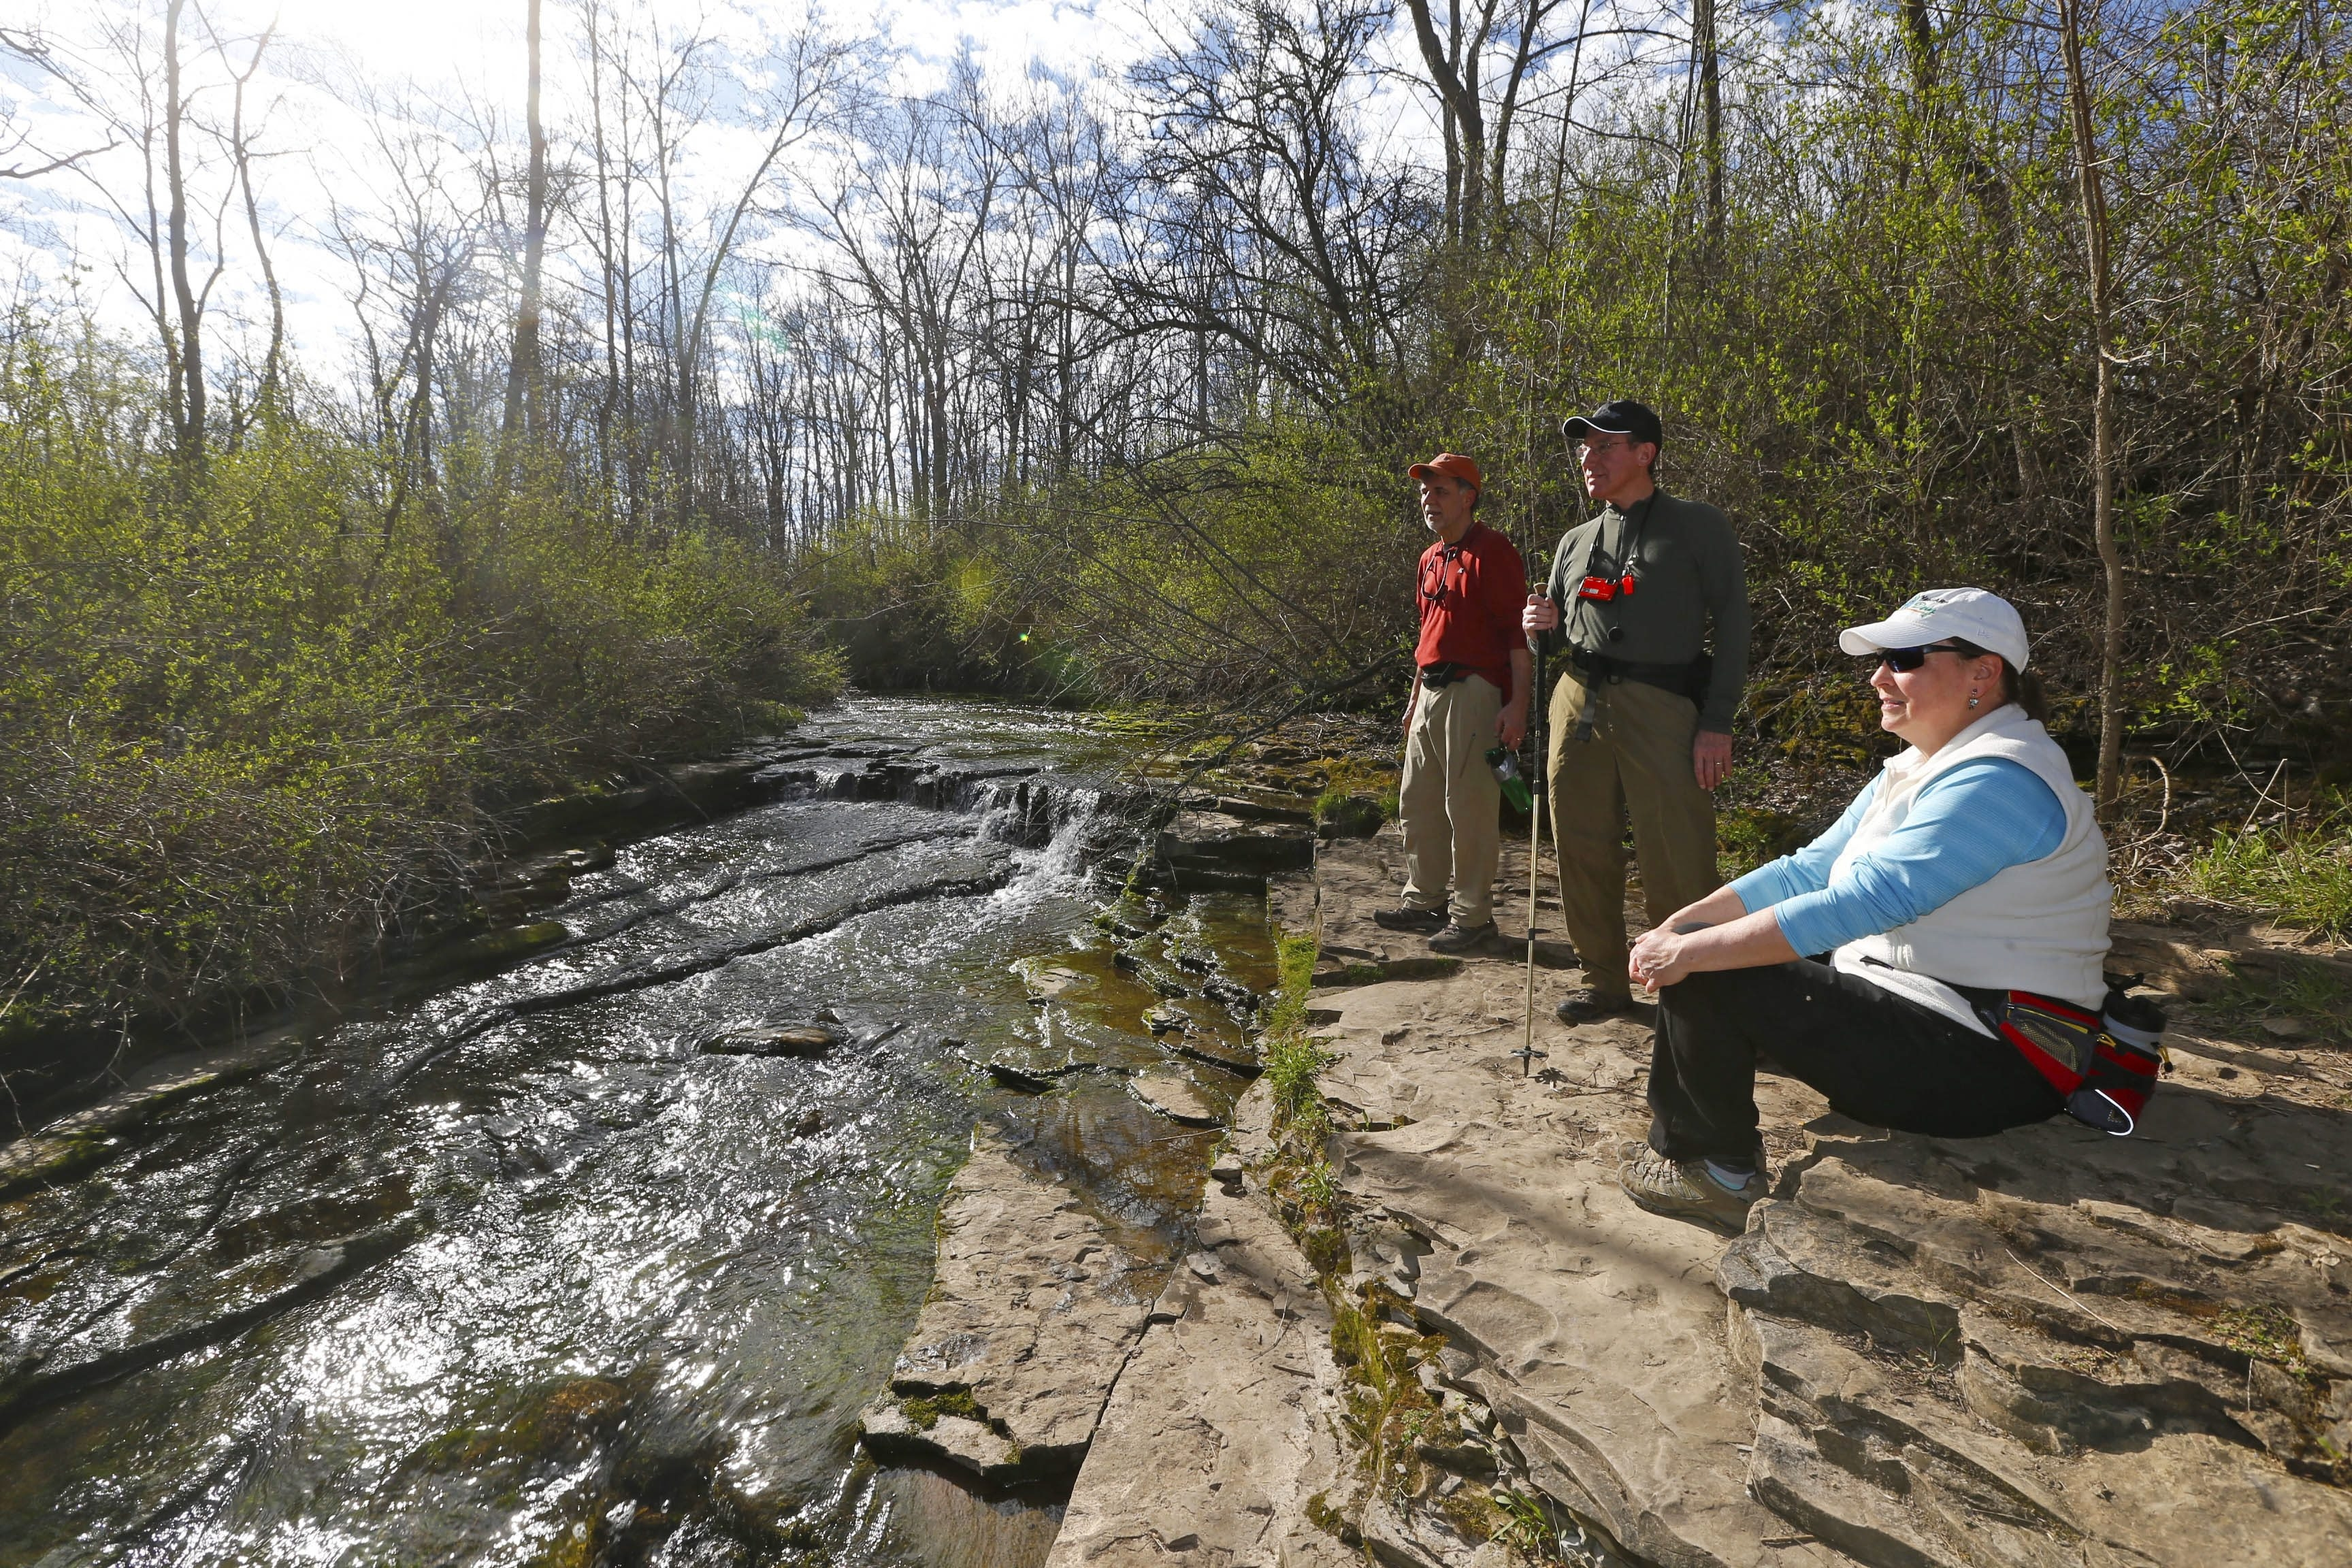 Janet and David Kowalski flank Richard Schraven during a stop along the trail at Royalton Ravine Park in Gasport. The three are members of two local outdoor groups that organize hiking tours.